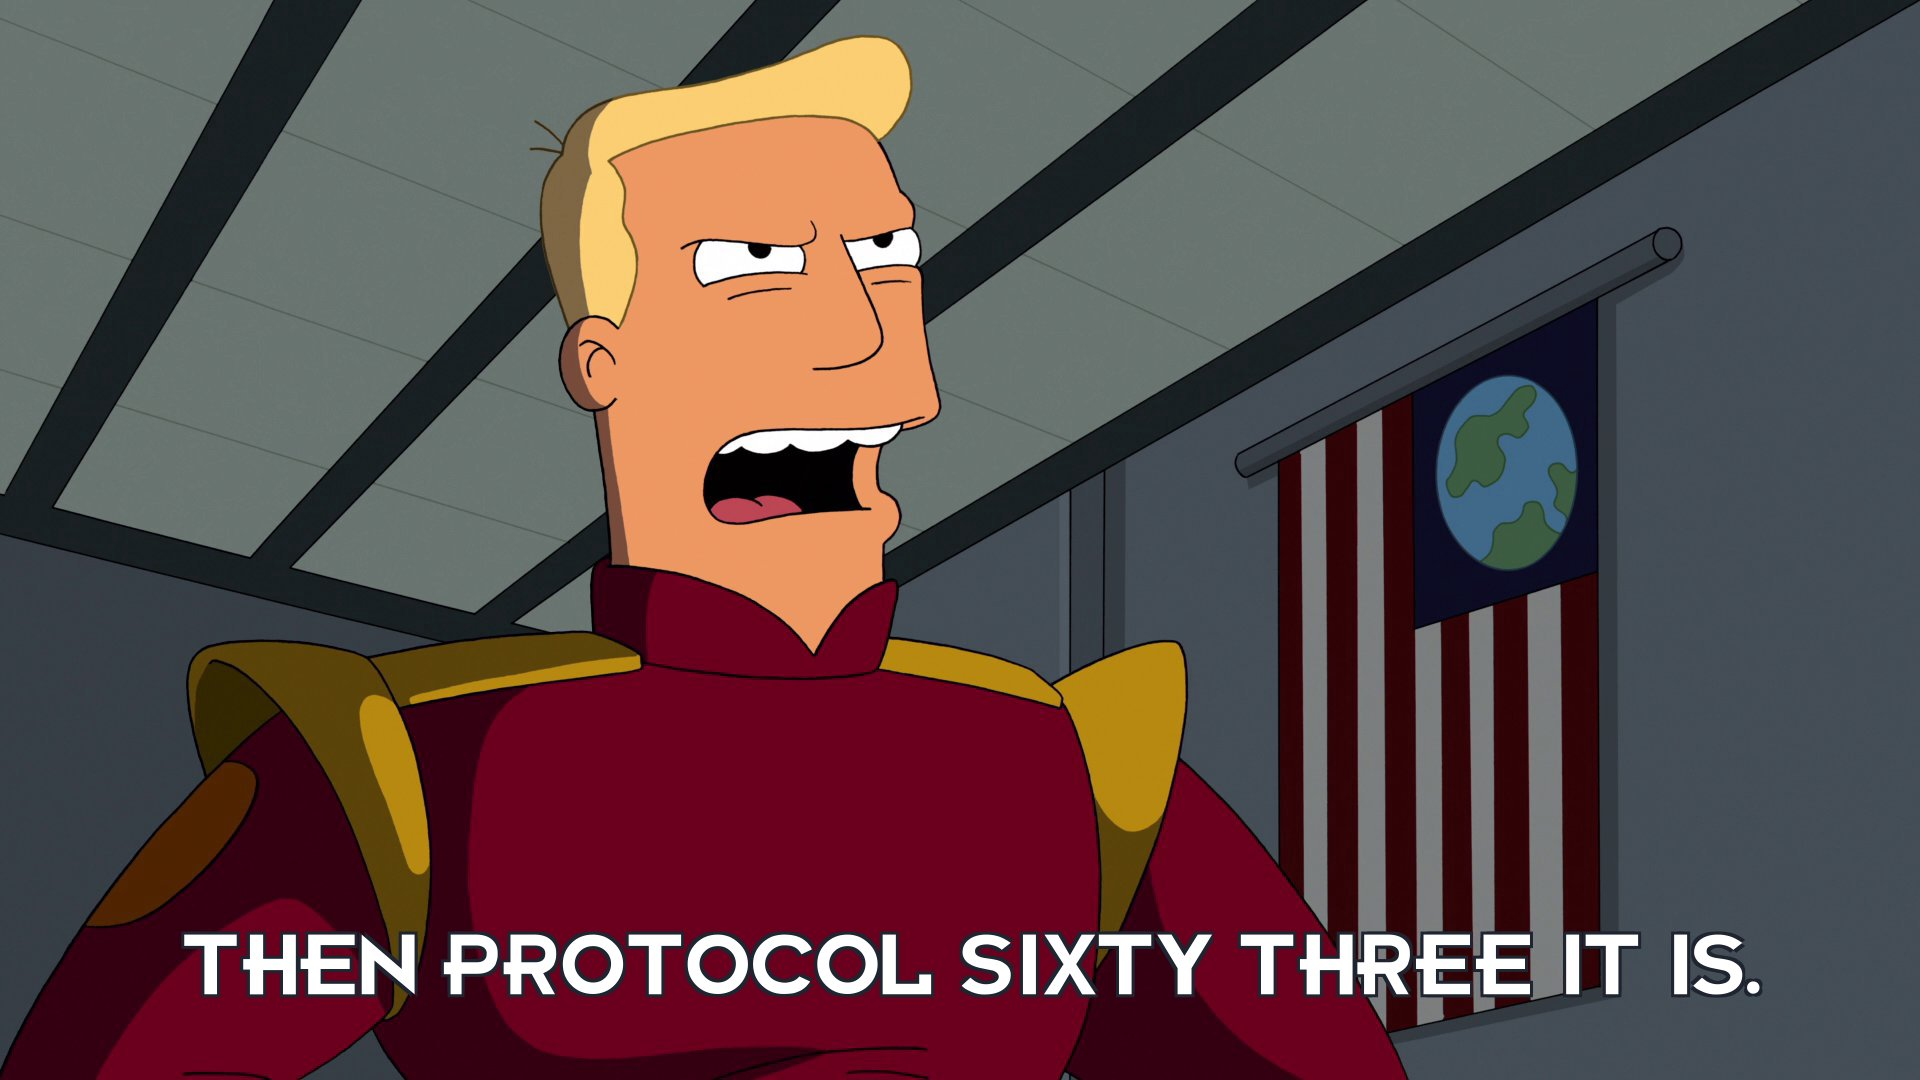 Zapp Brannigan: Then protocol sixty three it is.